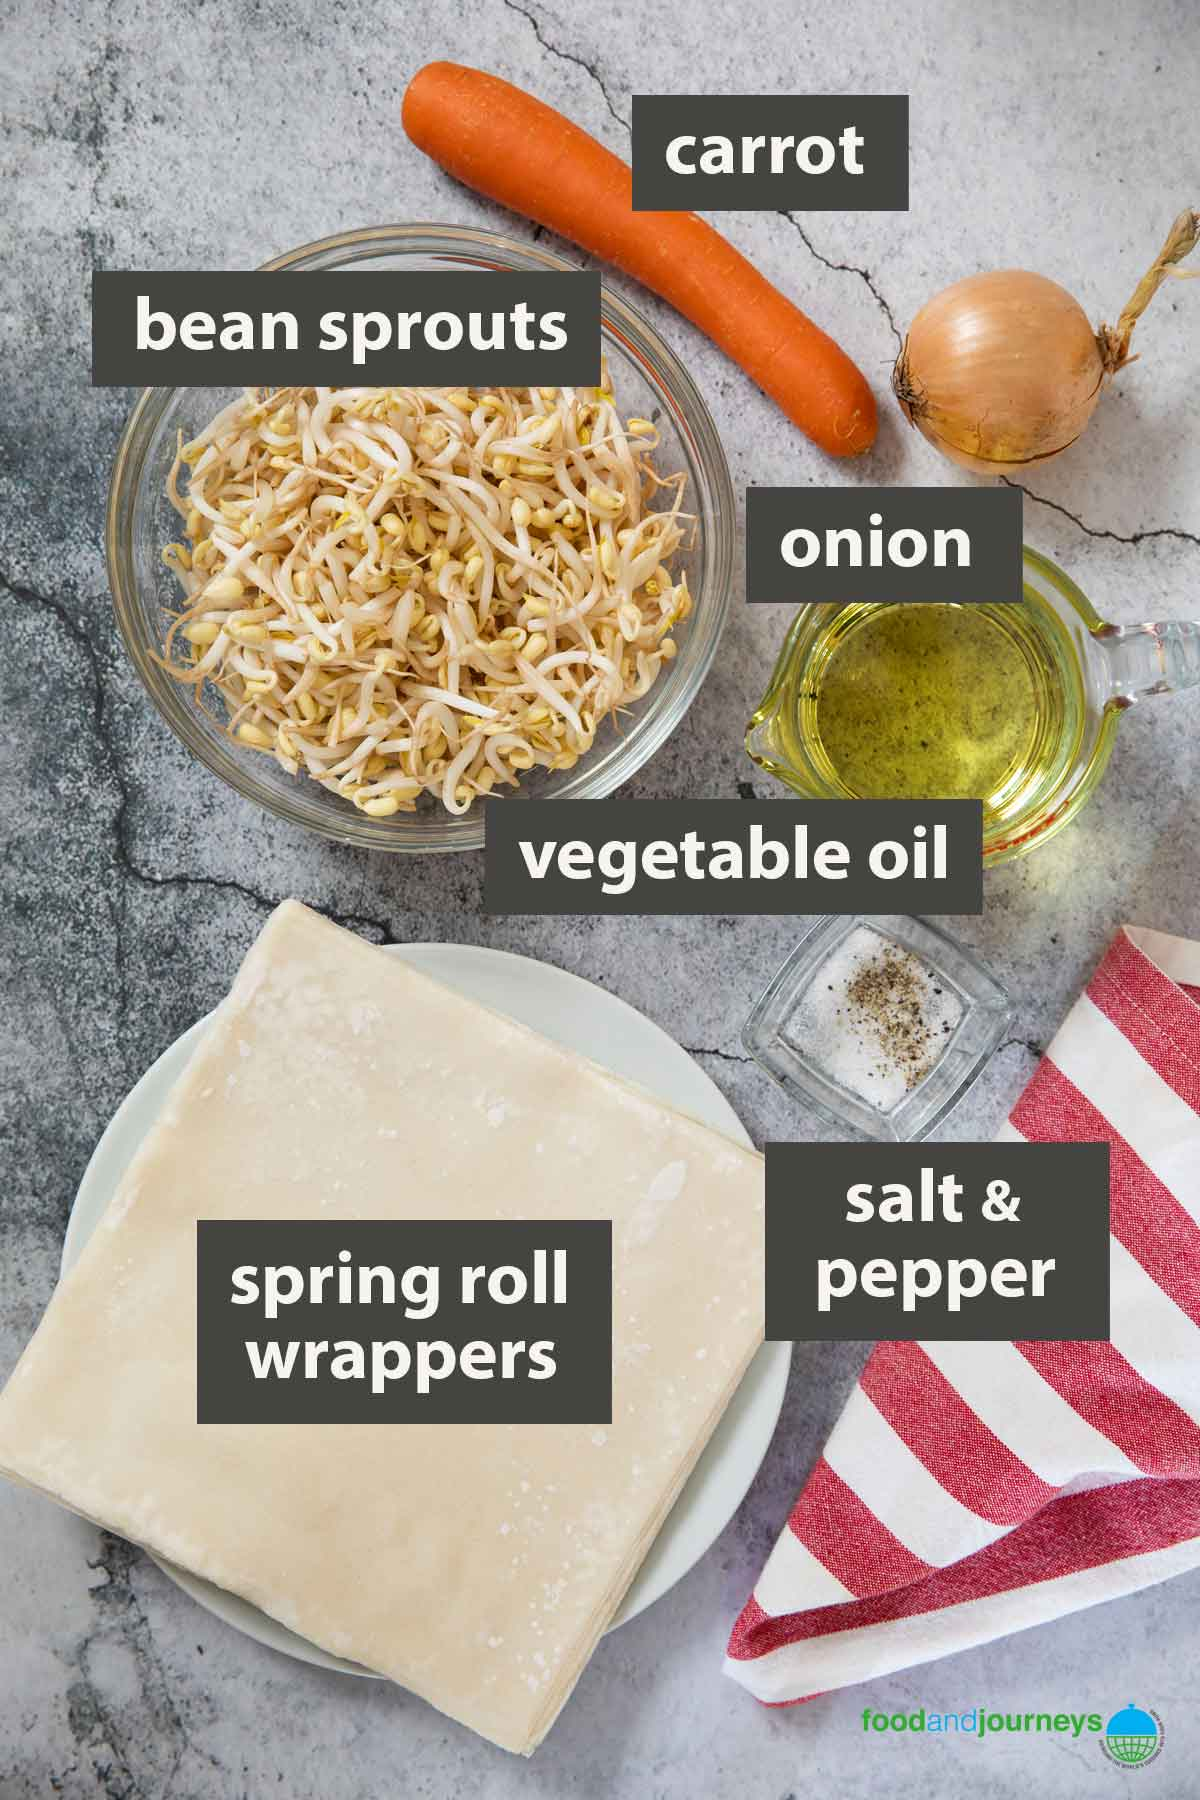 An image showing all the ingredients to prepare to make vegetable spring rolls.